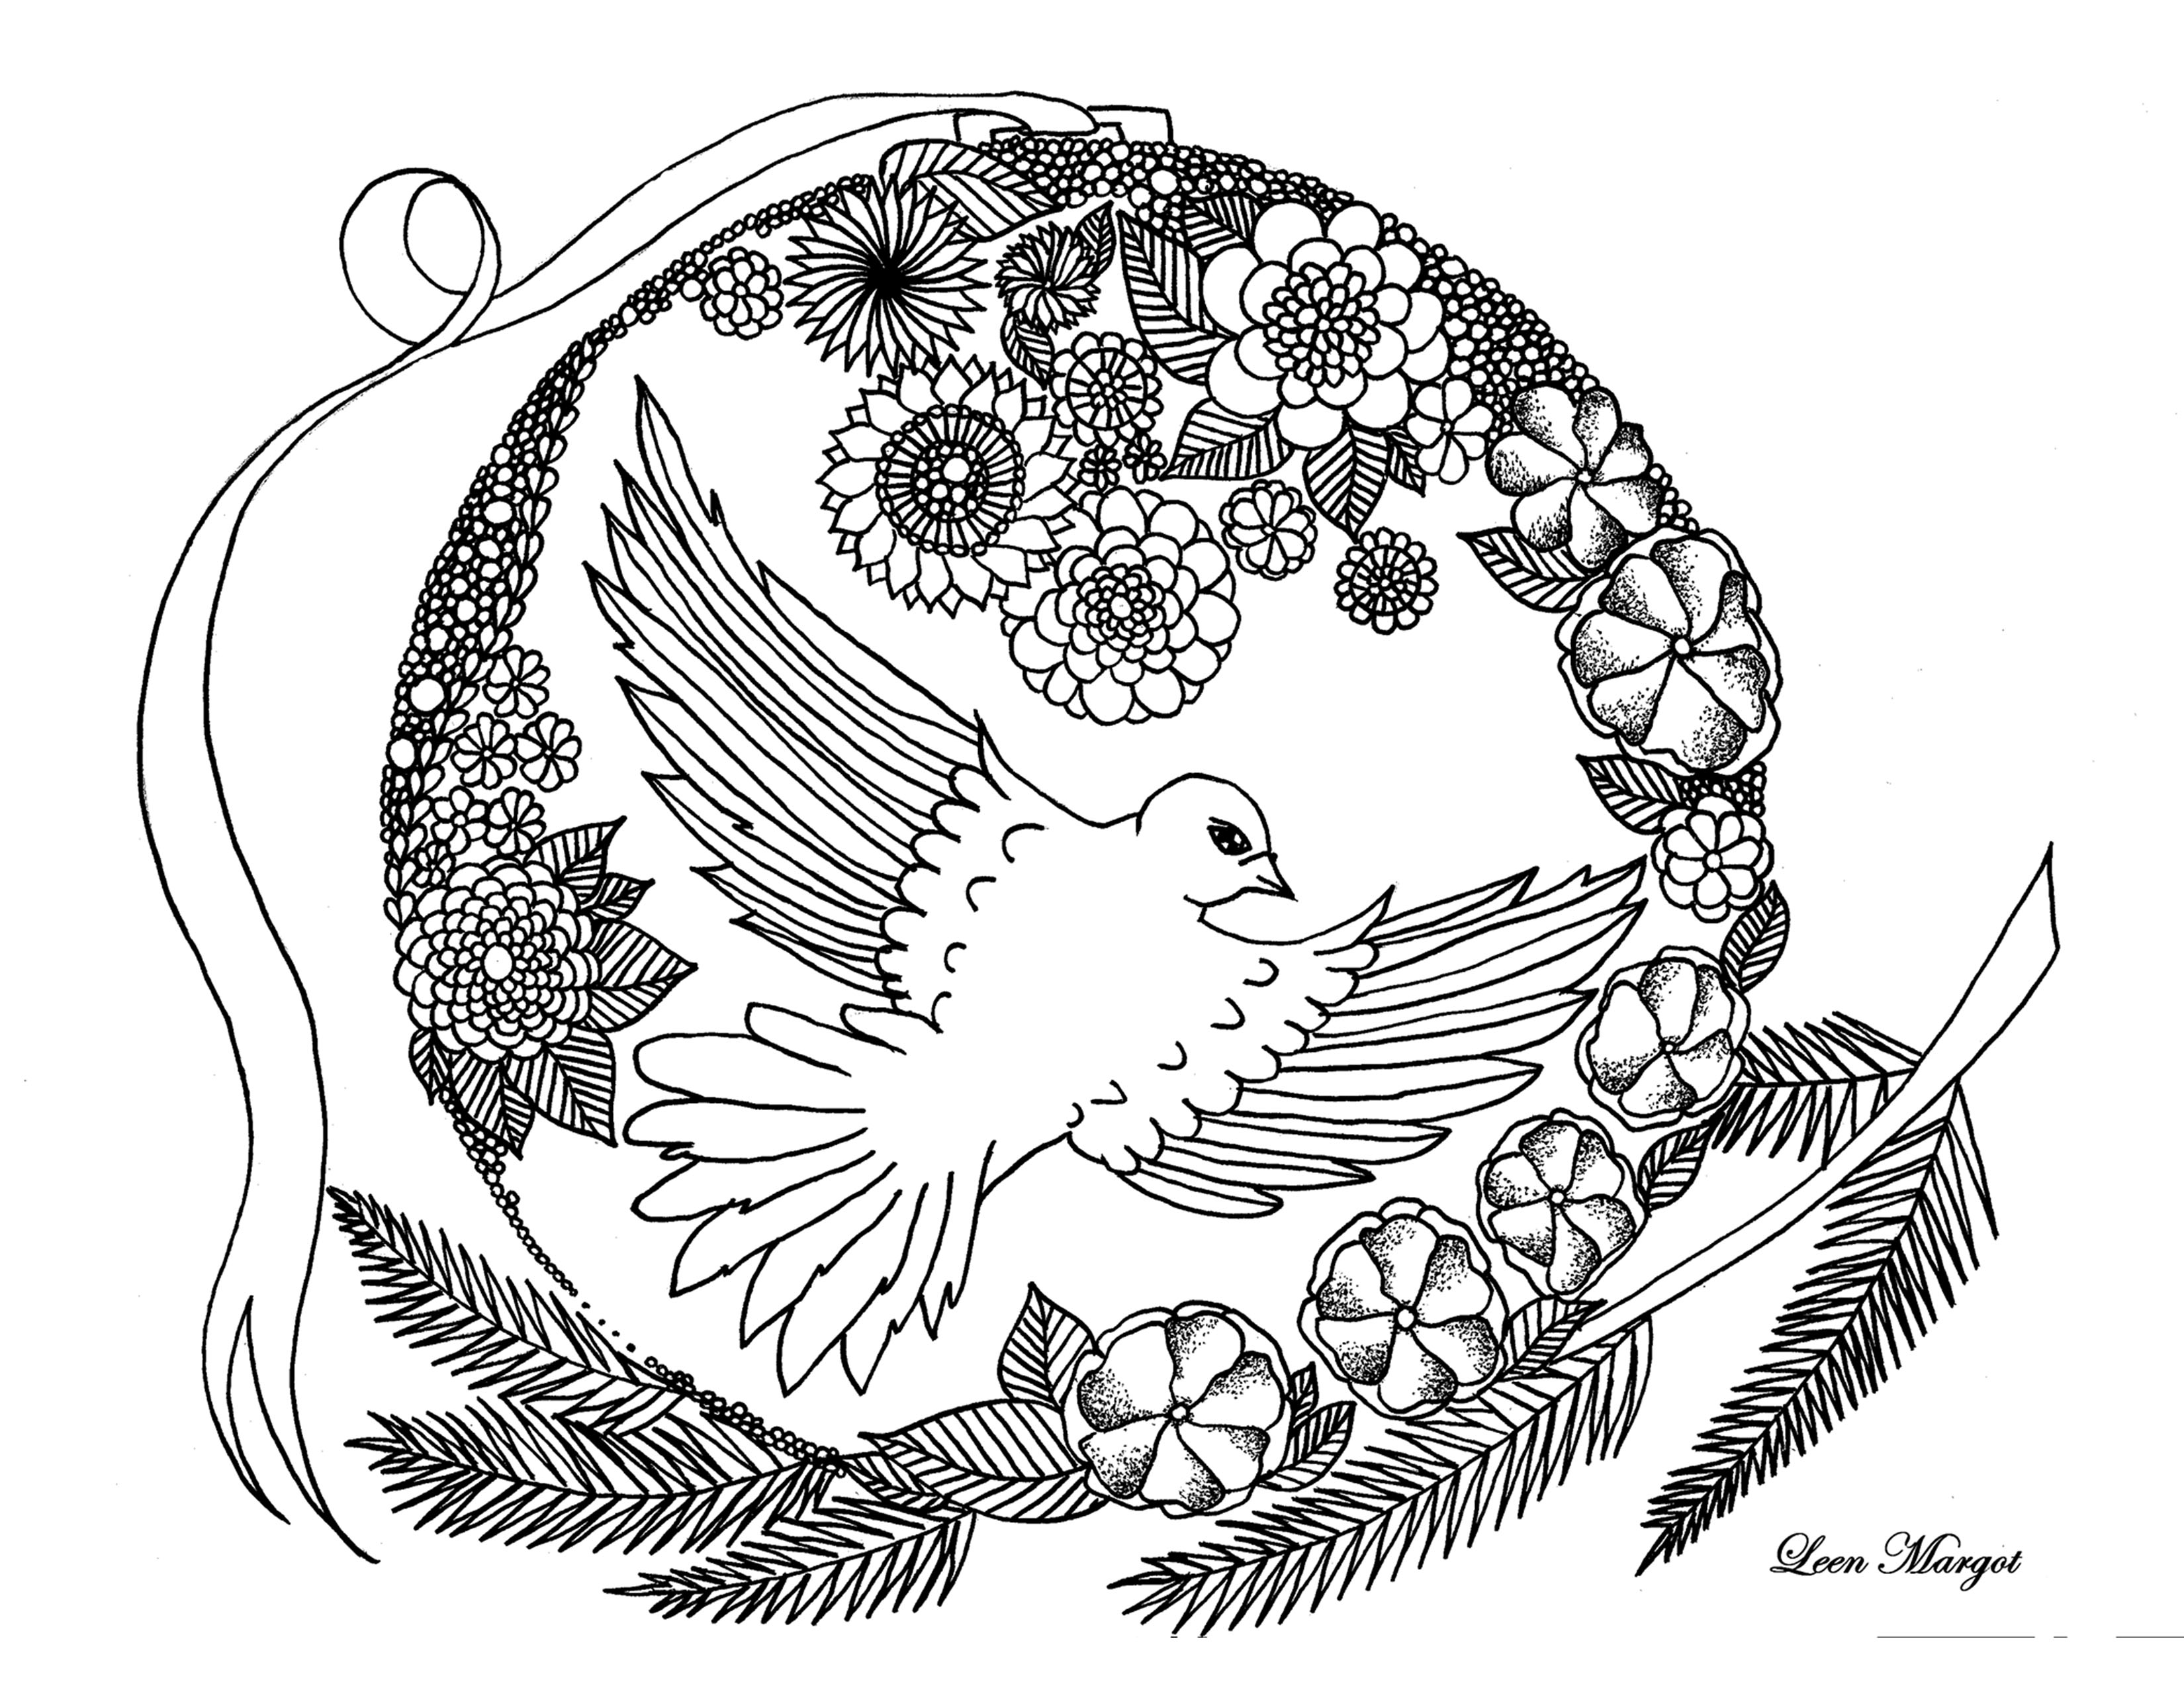 Coloriage animaux colombe par leen margot - Animaux coloriage ...